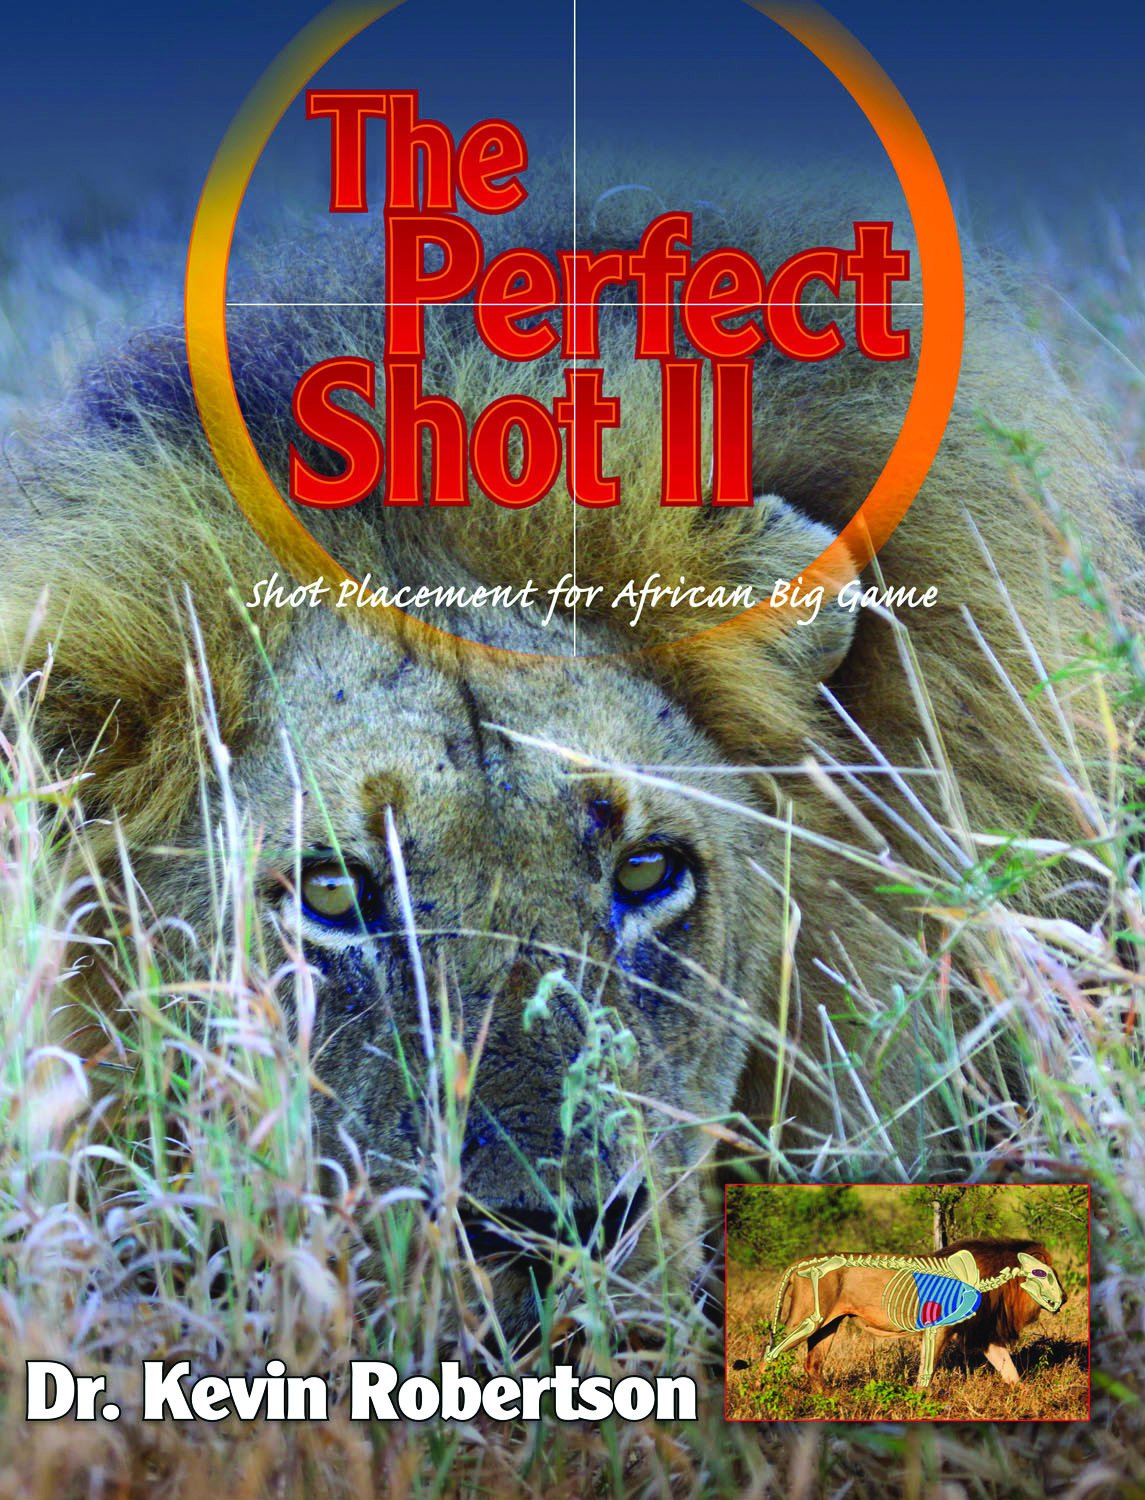 The Perfect Shot II: A Complete Revision of the Shot Placement for African Big Game pdf